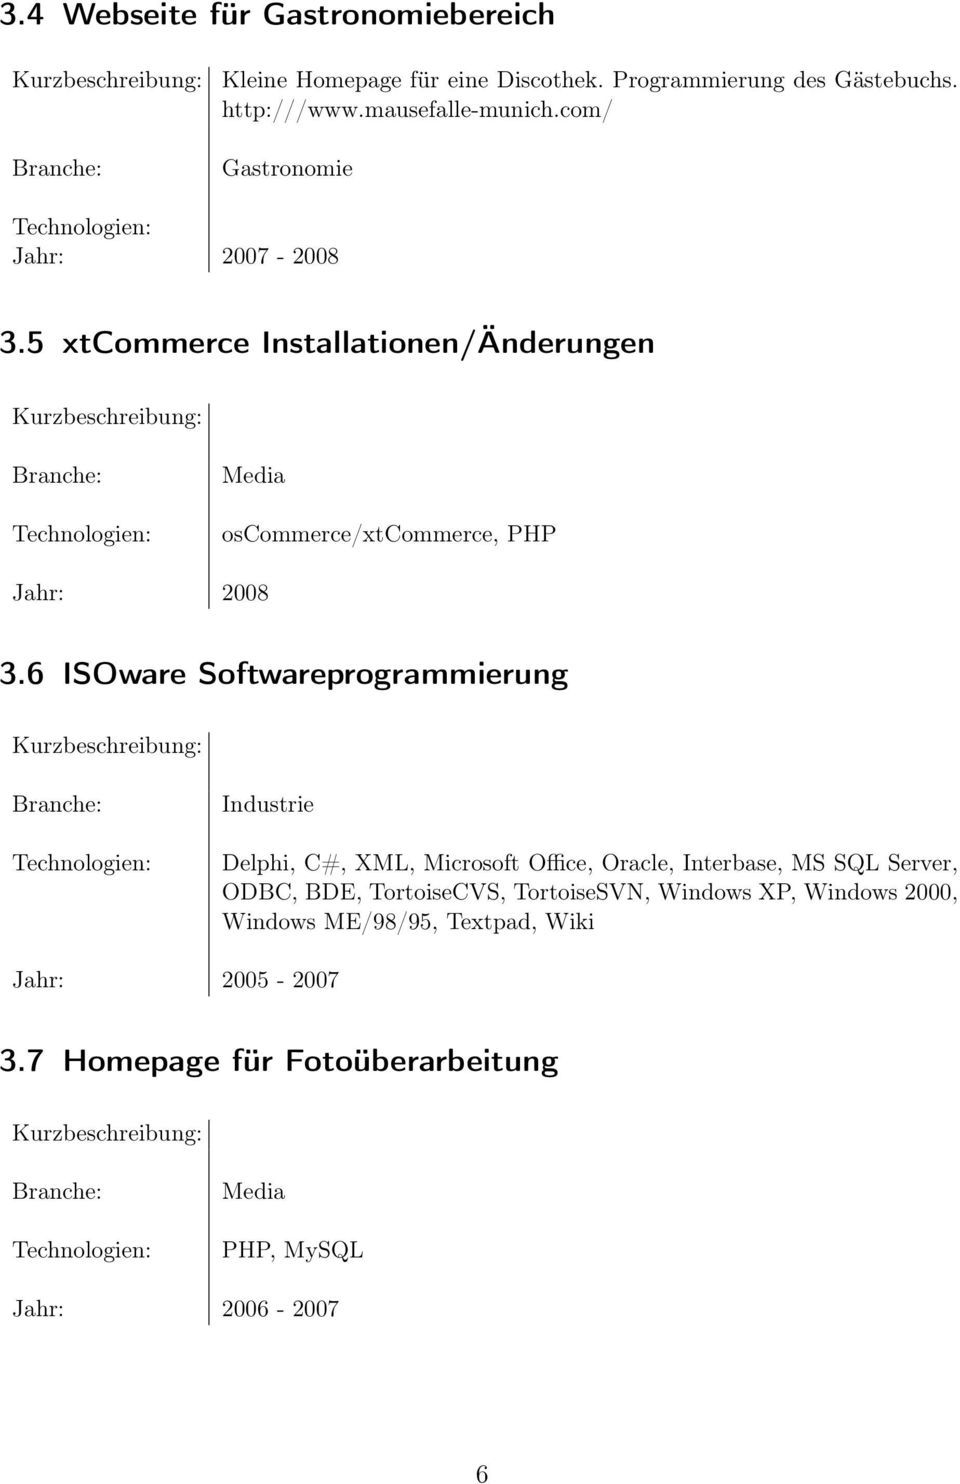 6 ISOware Softwareprogrammierung Industrie Delphi, C#, XML, Microsoft Office, Oracle, Interbase, MS SQL Server, ODBC, BDE, TortoiseCVS,